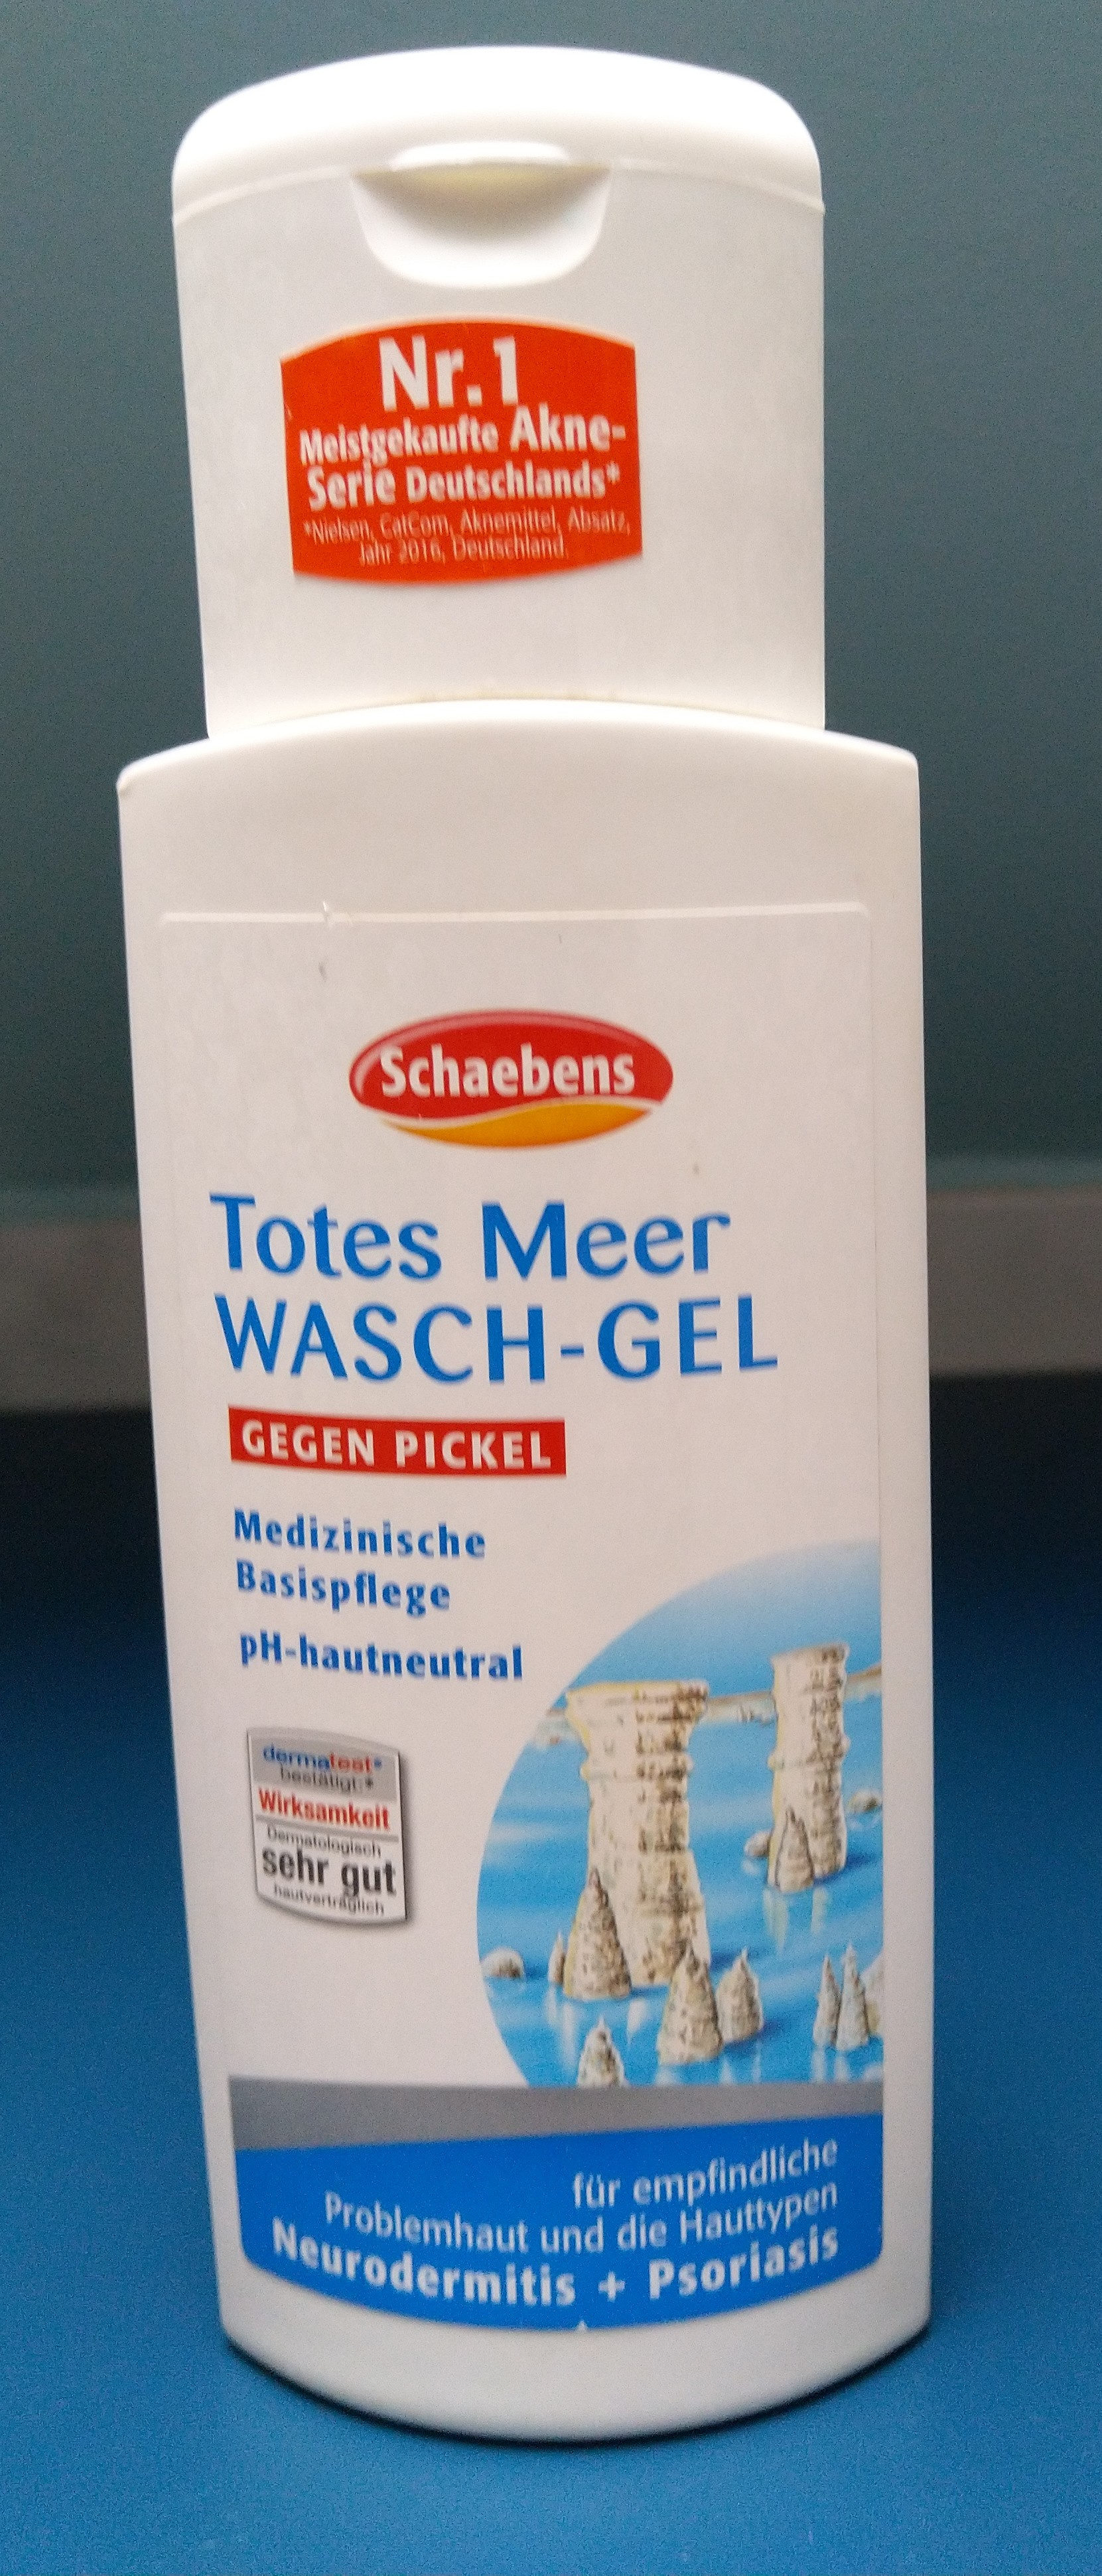 Totes Meer Wasch-Gel - Product